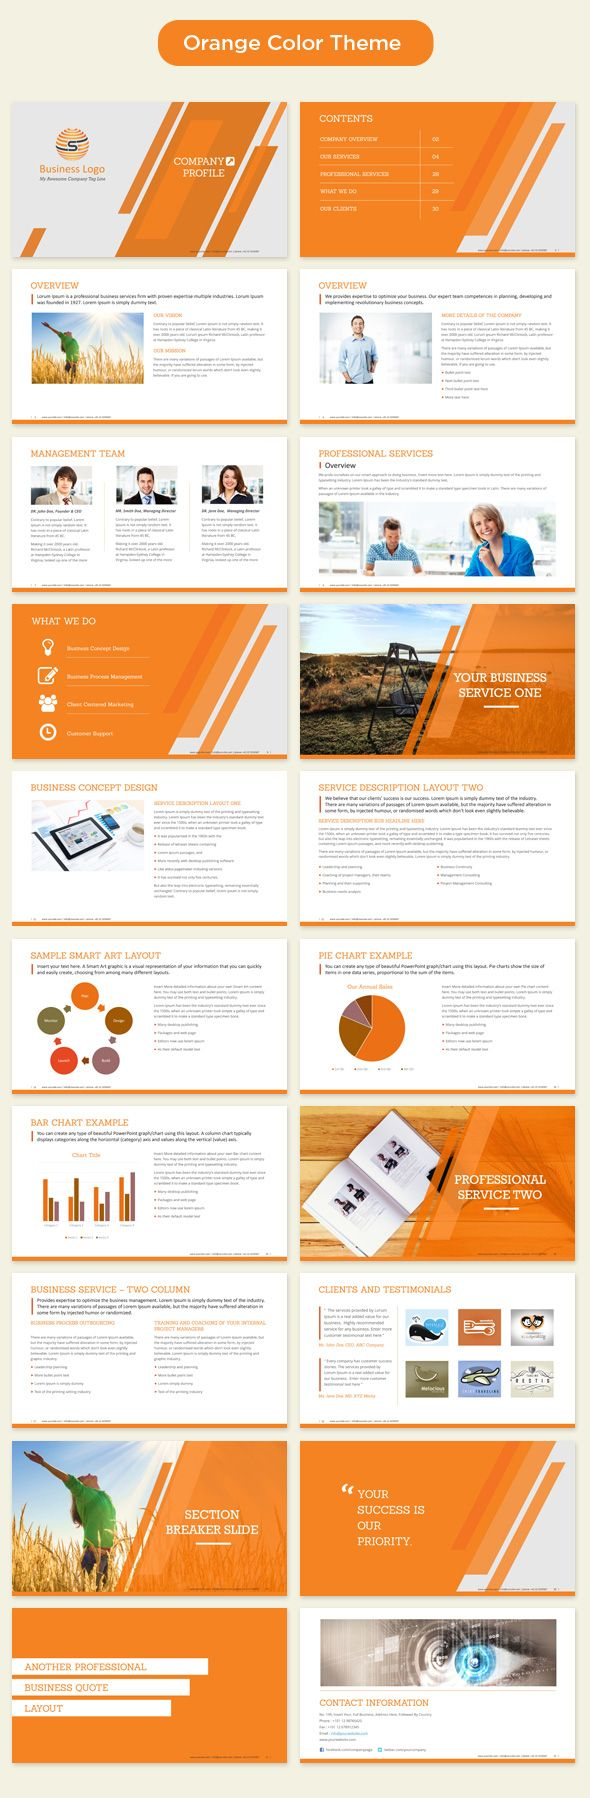 Company profile template powerpoint the template is available in 4 company profile template powerpoint the template is available in 4 unique color themes cheaphphosting Image collections